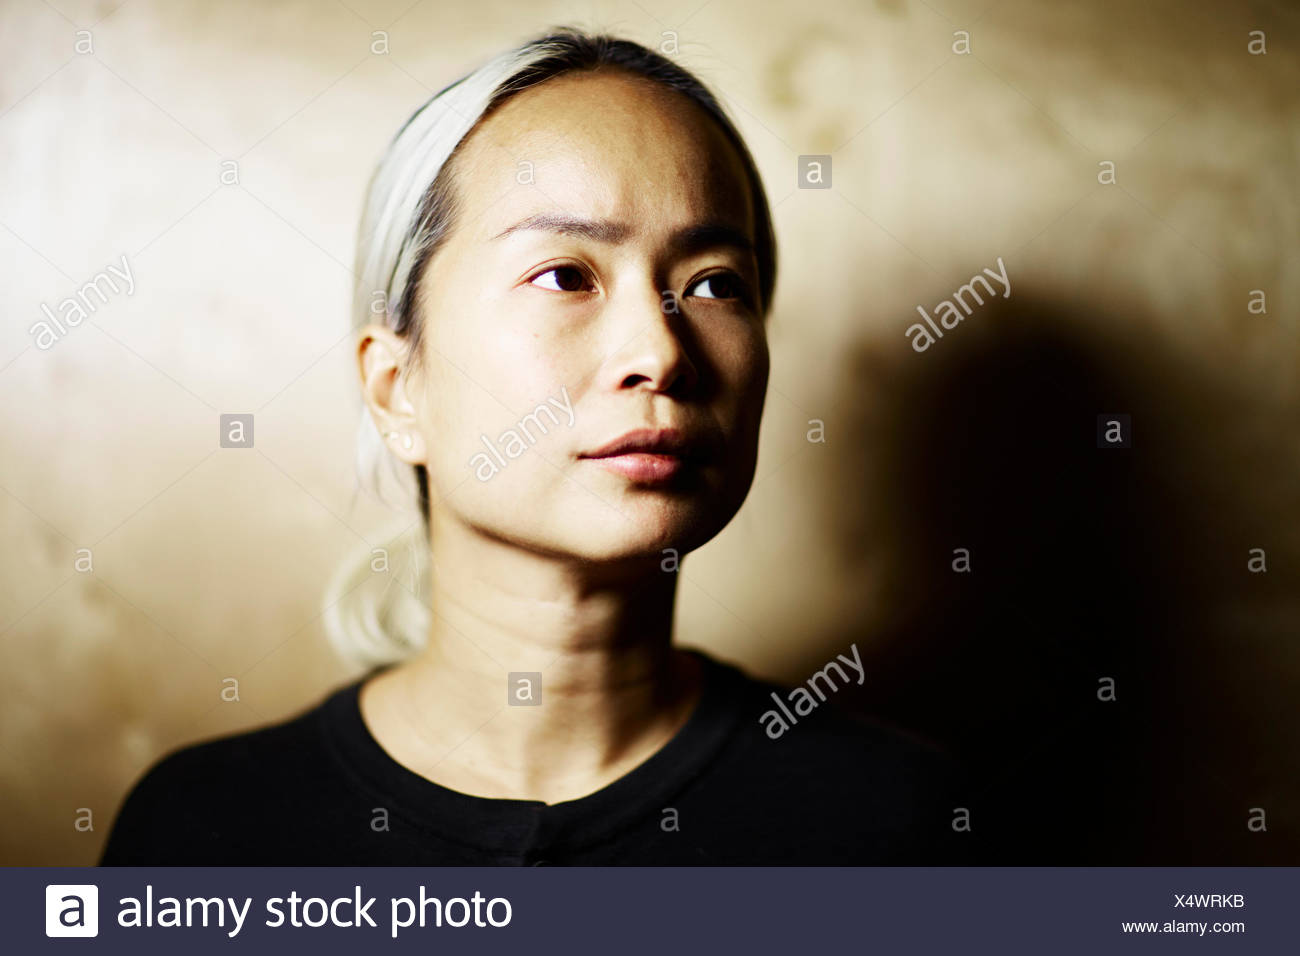 Mid adult woman looking away - Stock Image